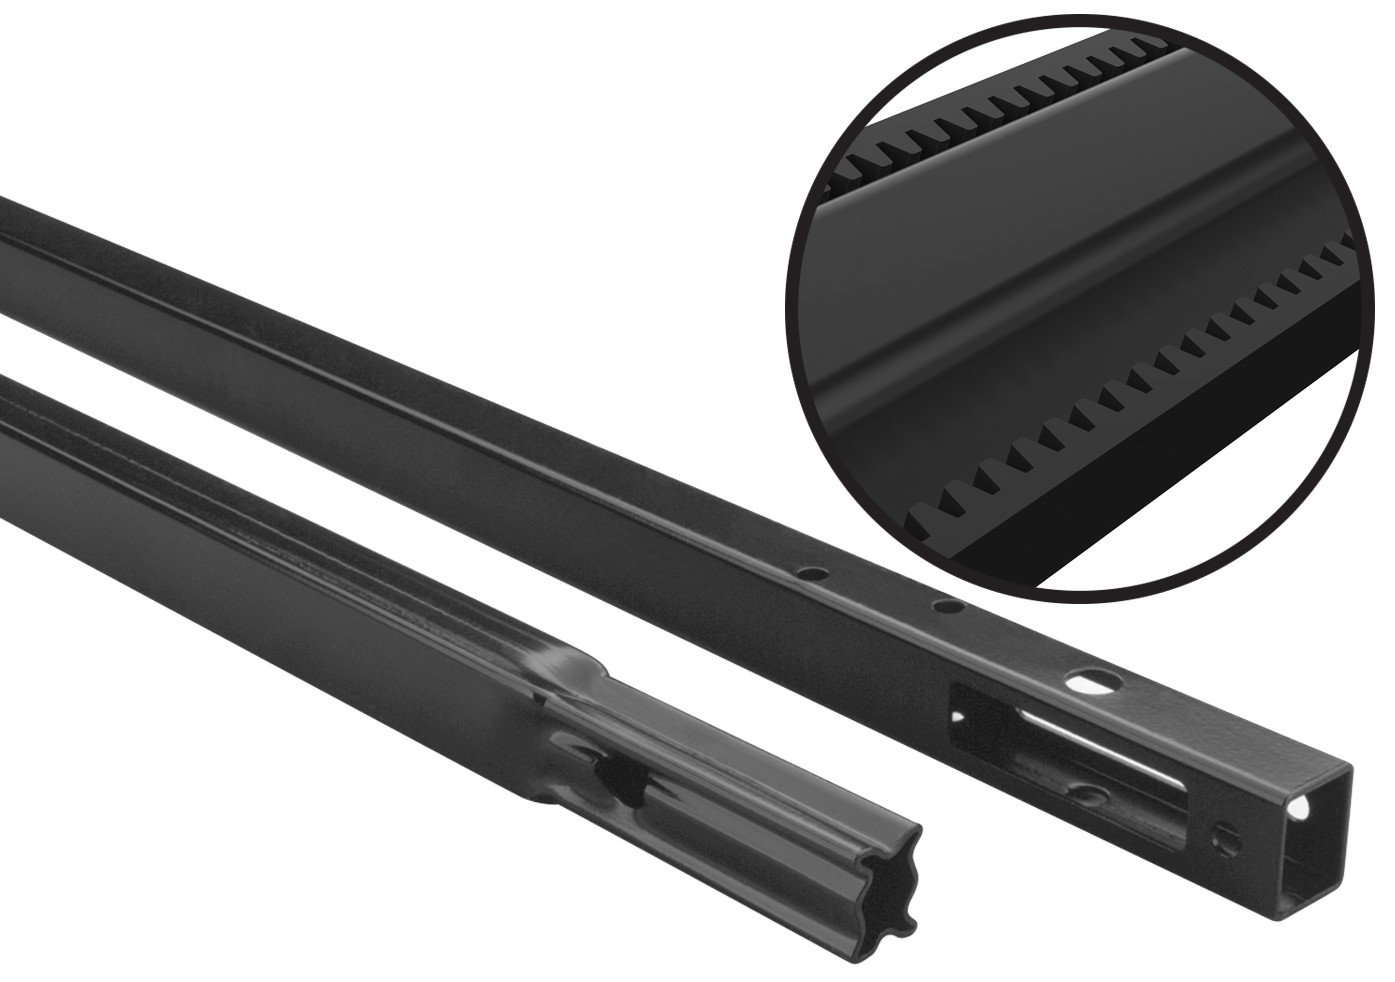 Chamberlain 8810CB 10-Foot Belt Drive Garage Door Opener Extension Kit, Compatible with Whisper Drive and Whisper Drive Plus Models, Includes Rail Extension and Replacement Belt by Chamberlain (Image #4)